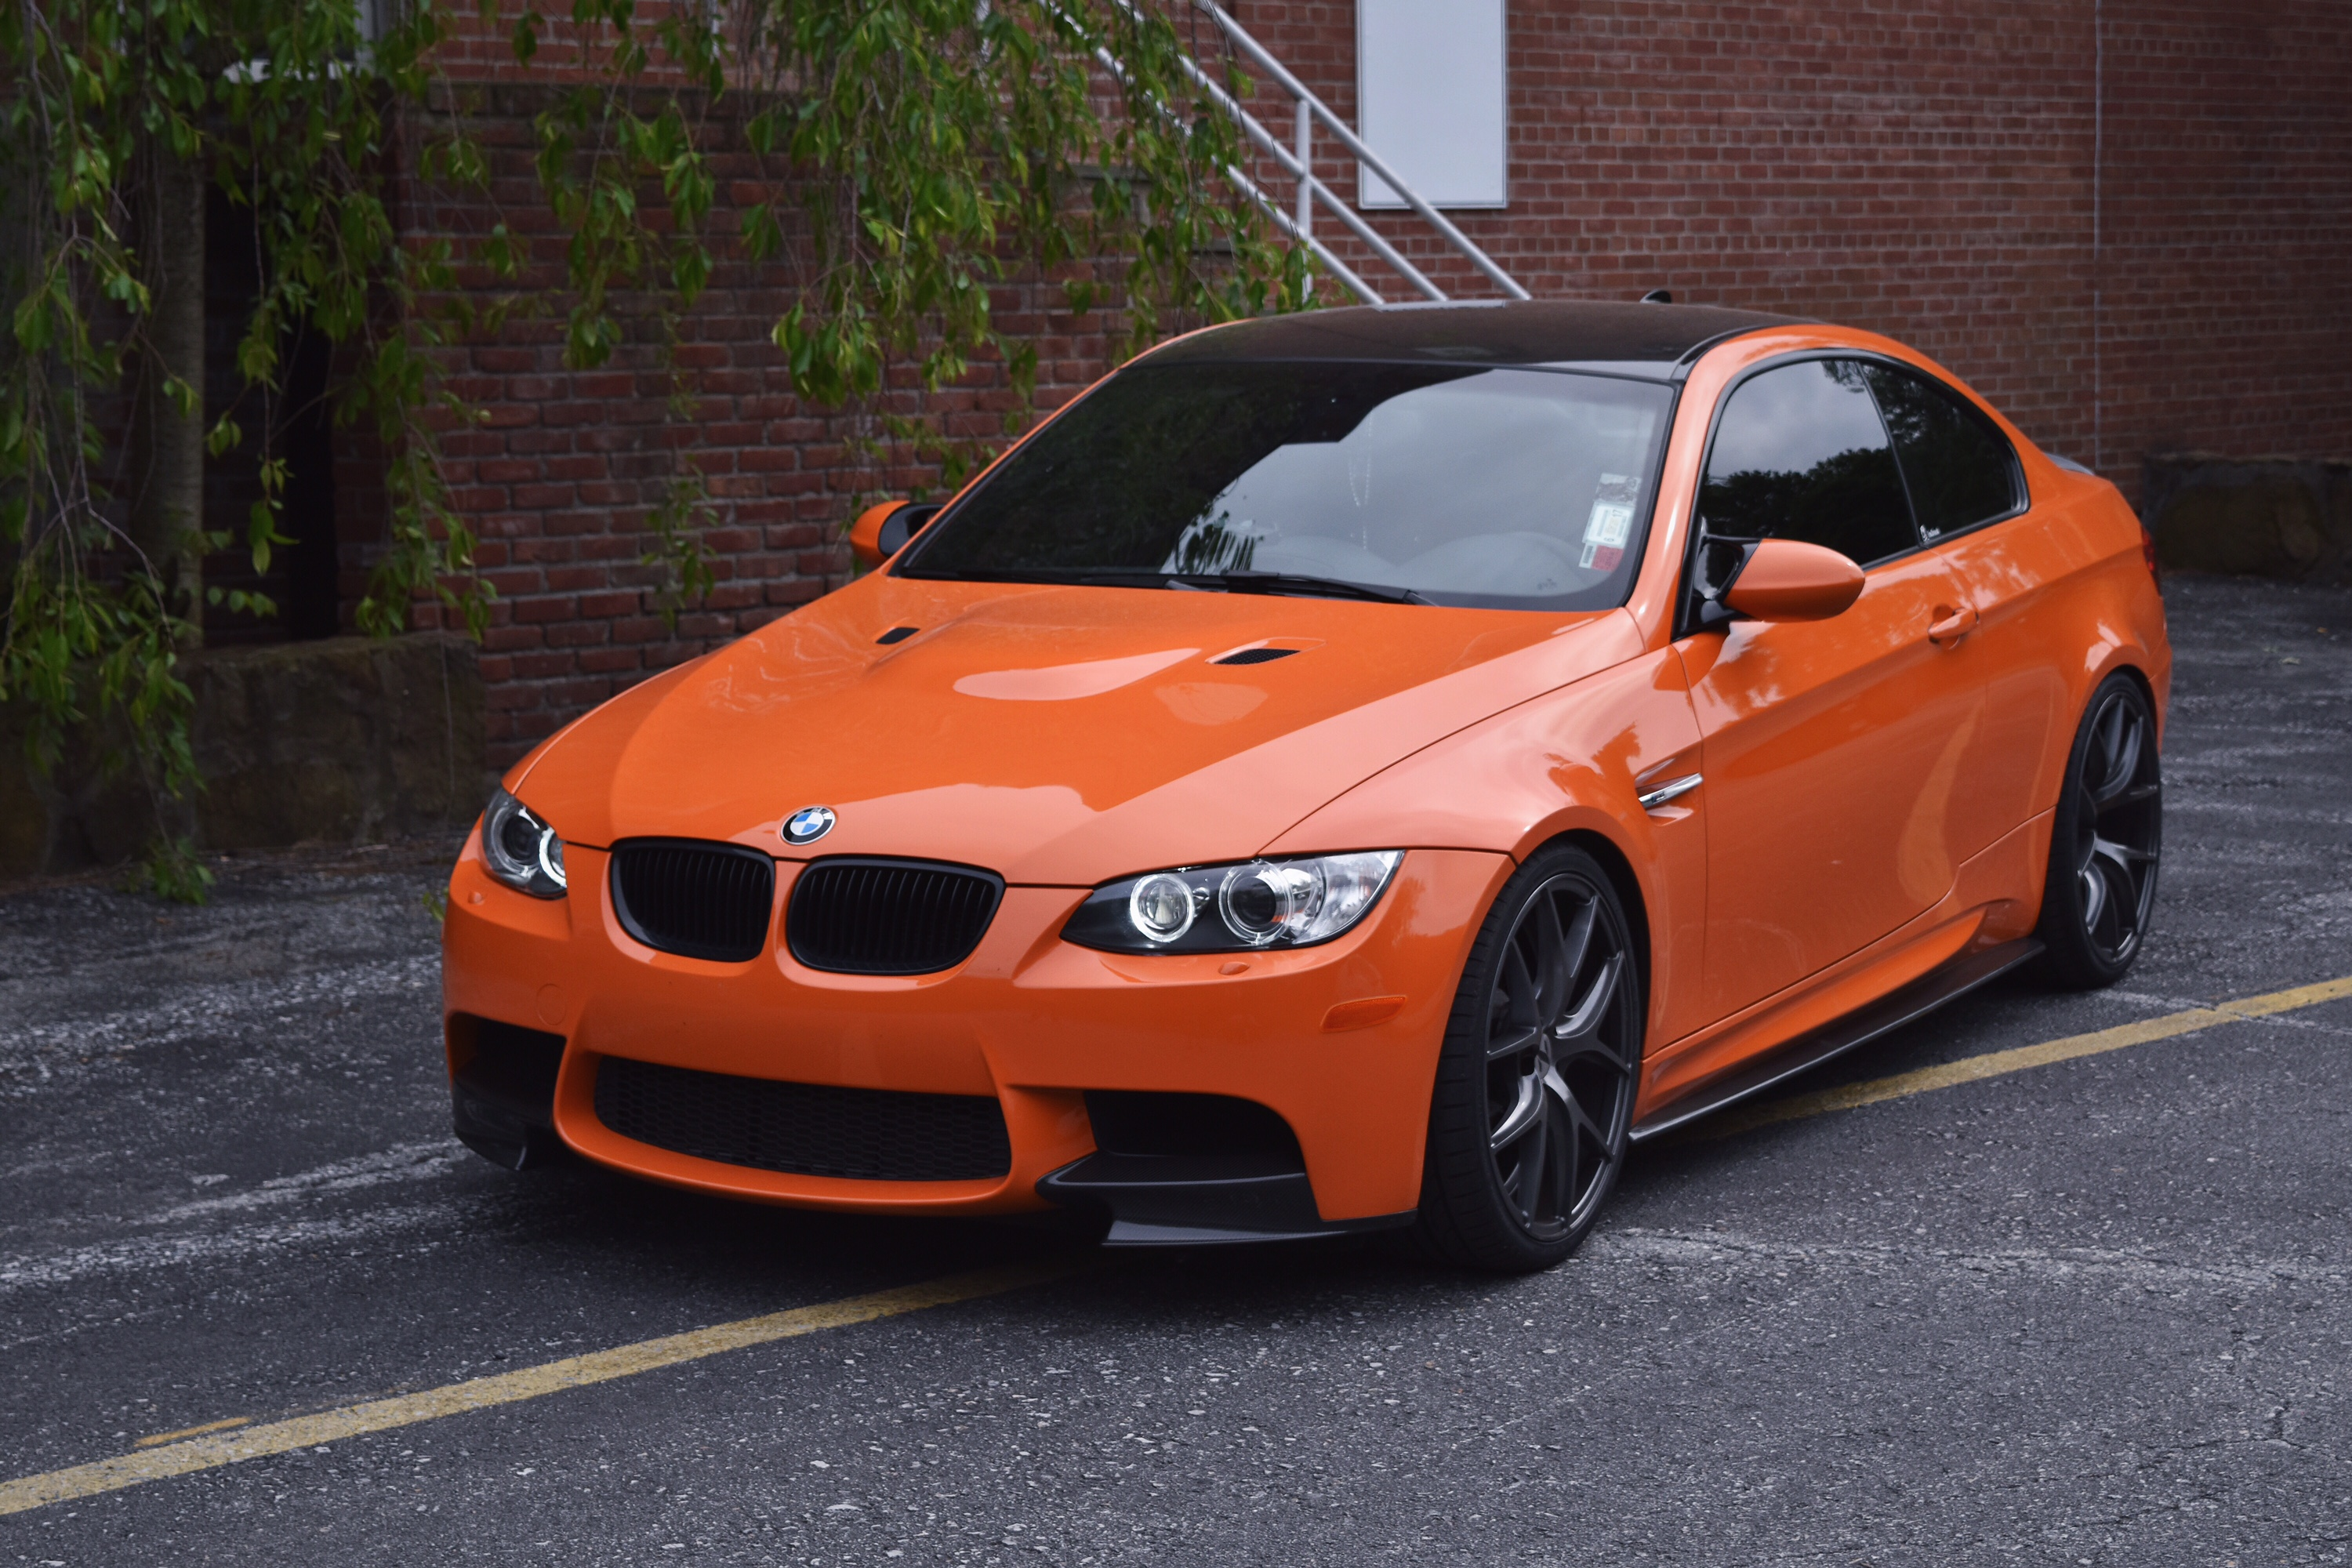 BMW E92 M3 Orange Gunmetal ZS05